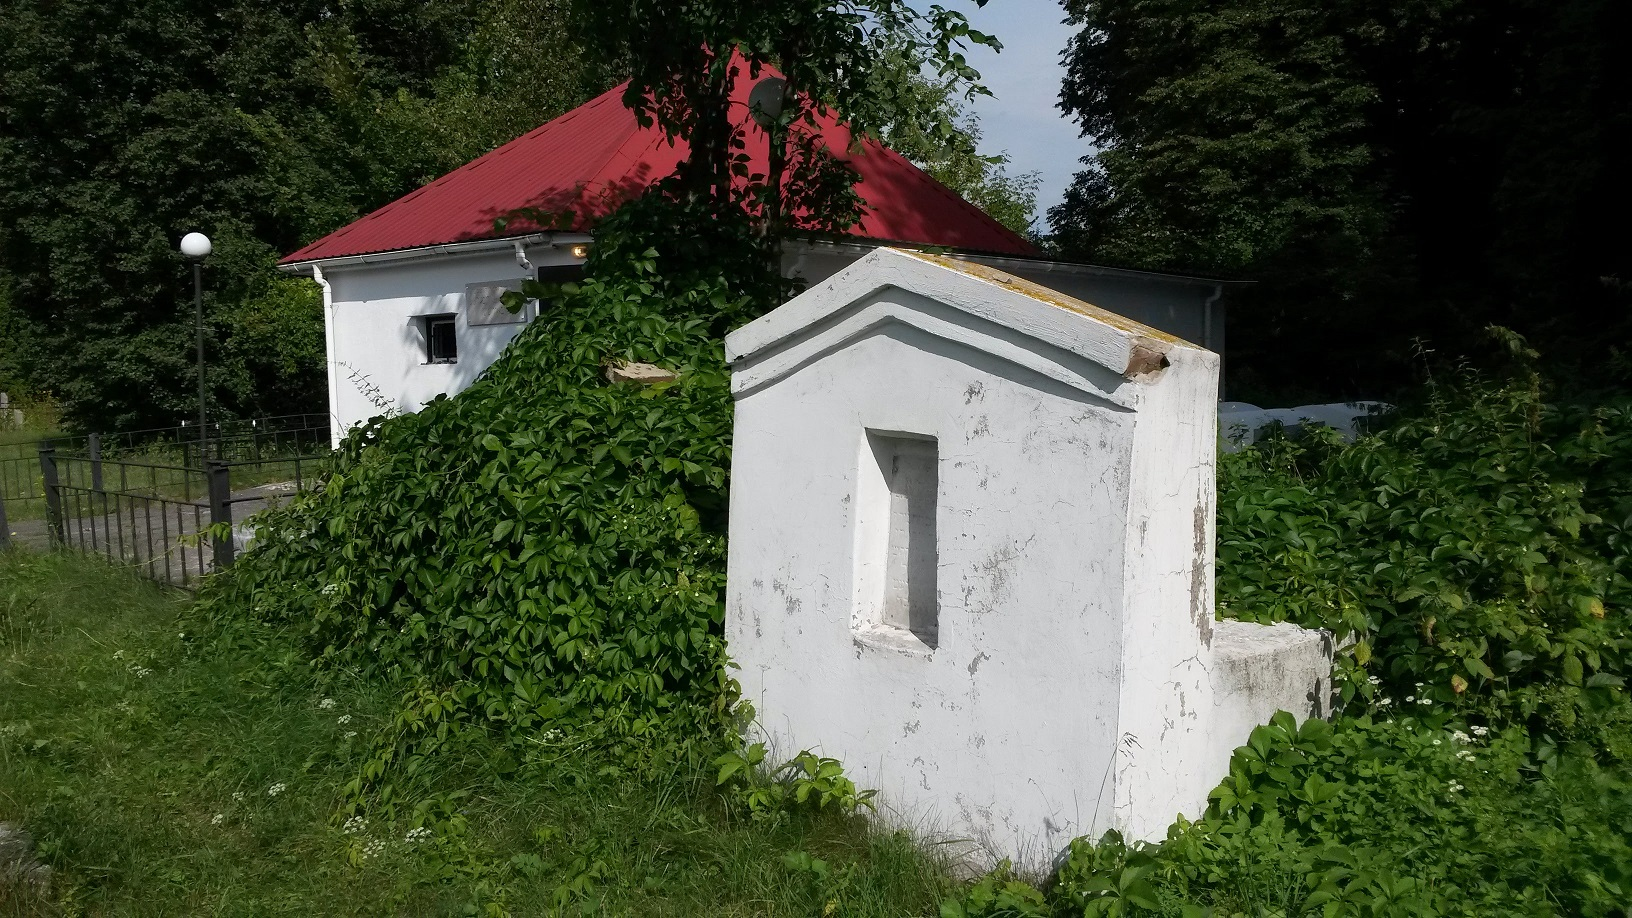 Grave of Shloime-Menahem-Mendl Heyn (1880, Chernigov - 1919, Nezhin), local Rabbi who was killed by Denikin's soldiers